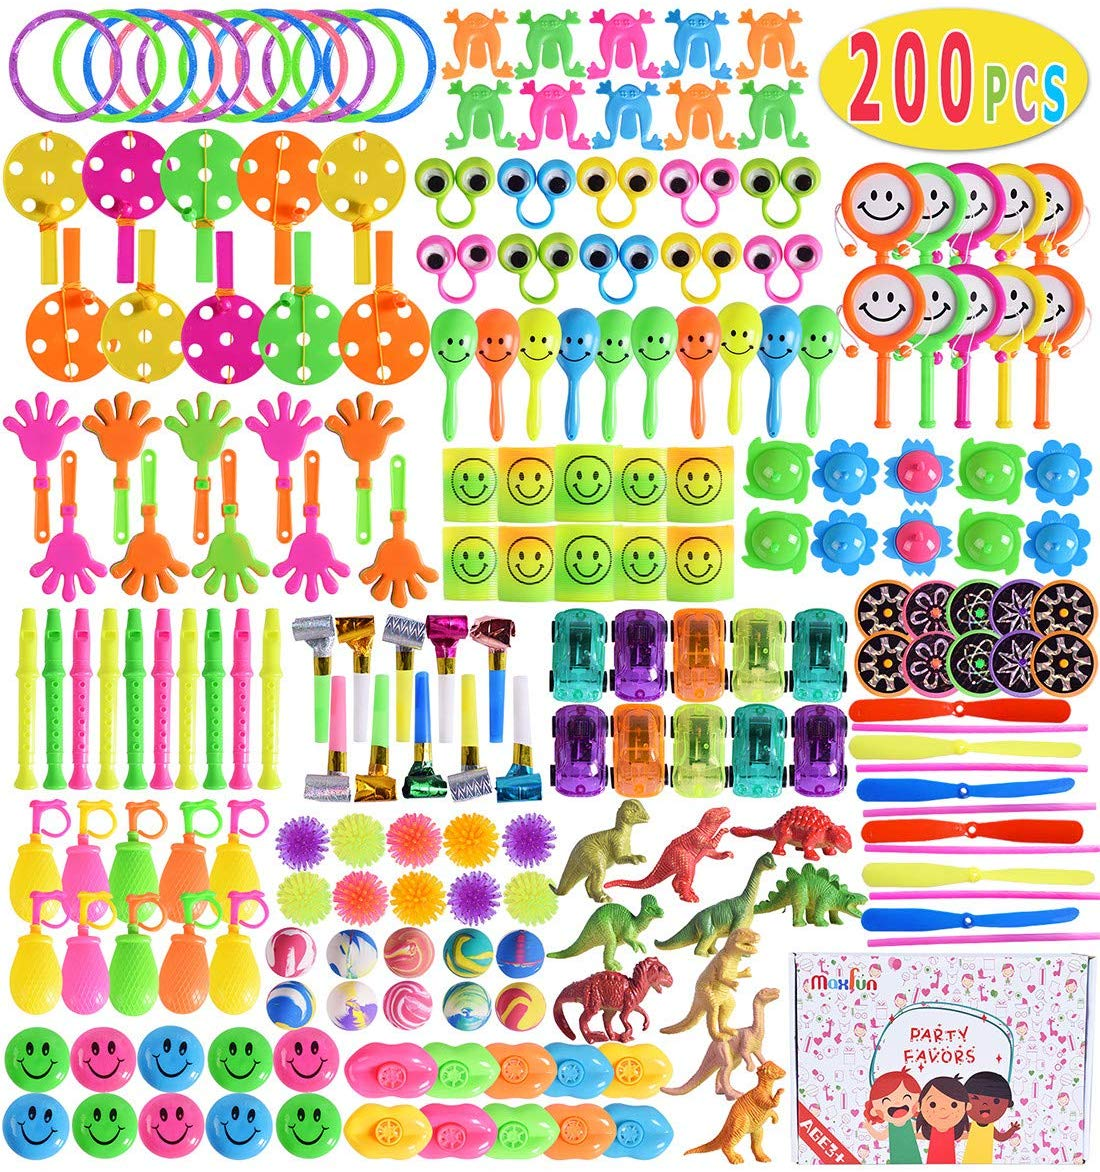 Max Fun 200Pcs Random Color Assortment Toys for Kids Birthday Party Favors Prizes Box Toy Assortment